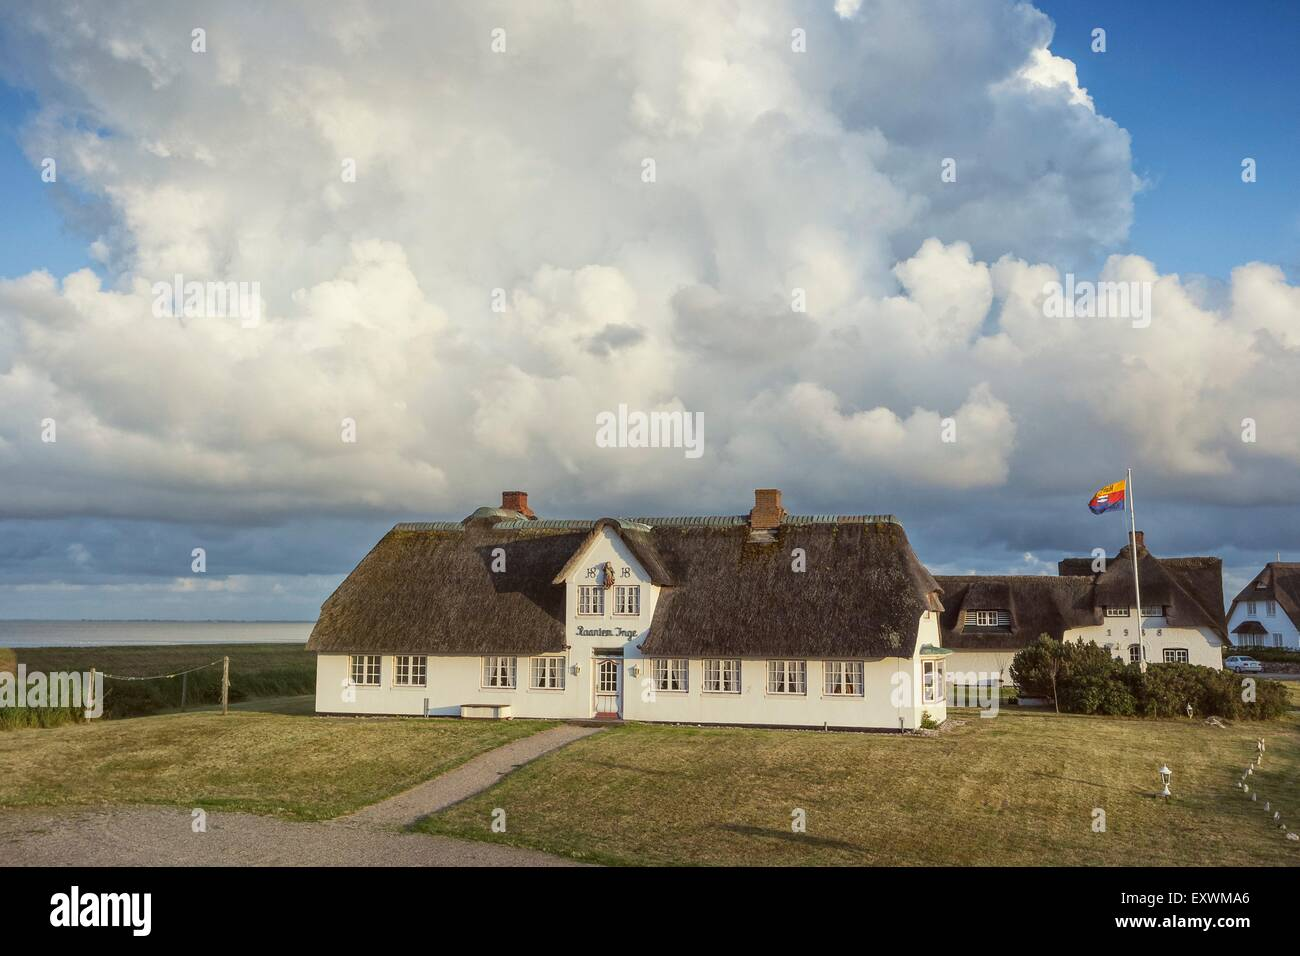 Thatched-roof house Raantem Inge in Rantum, Sylt, Germany - Stock Image